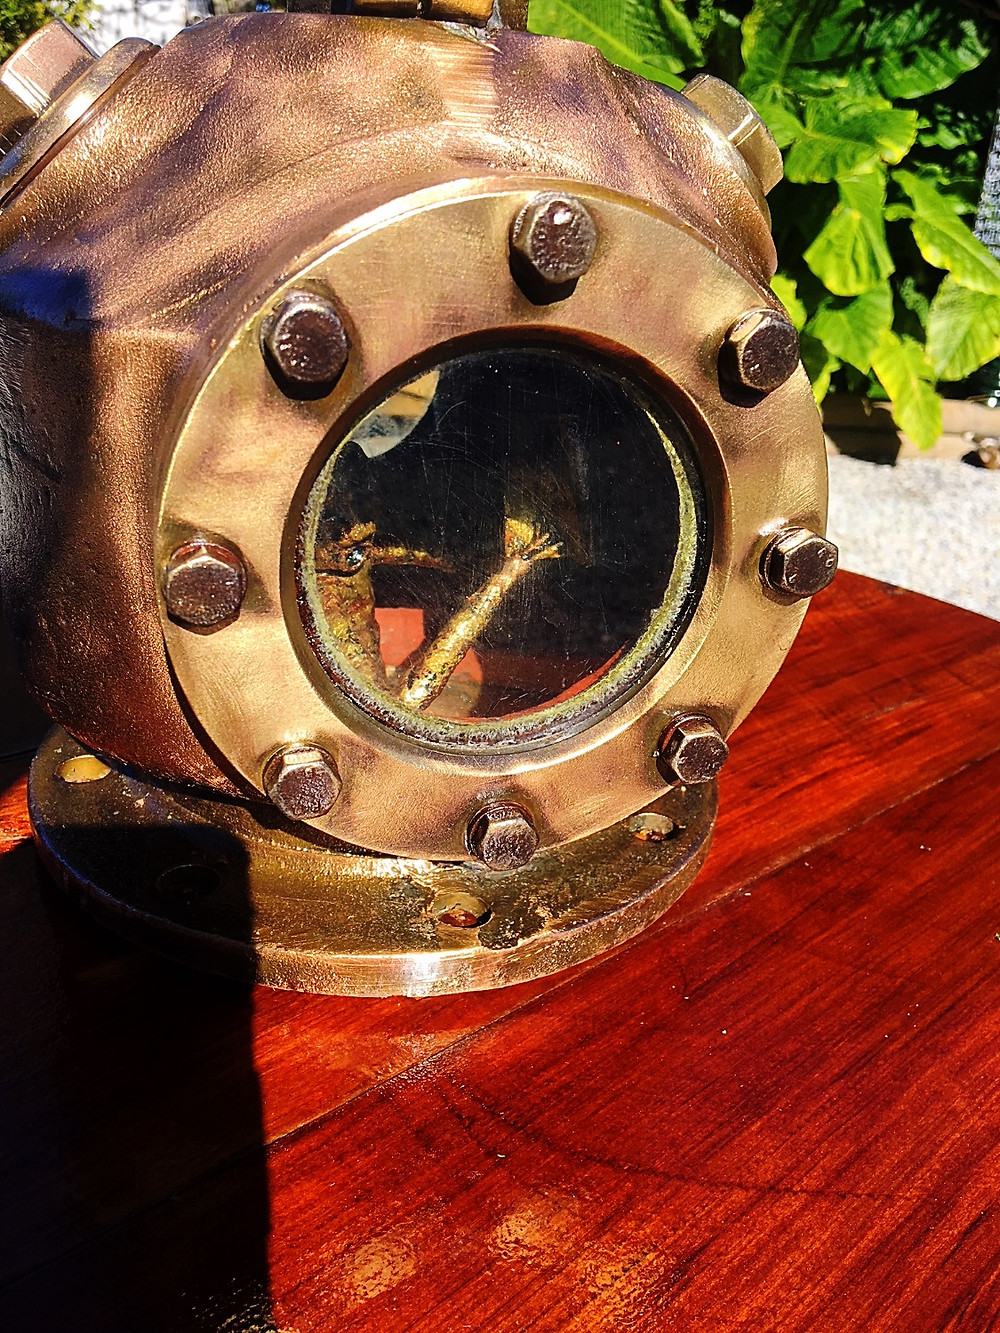 man inside diving helmet